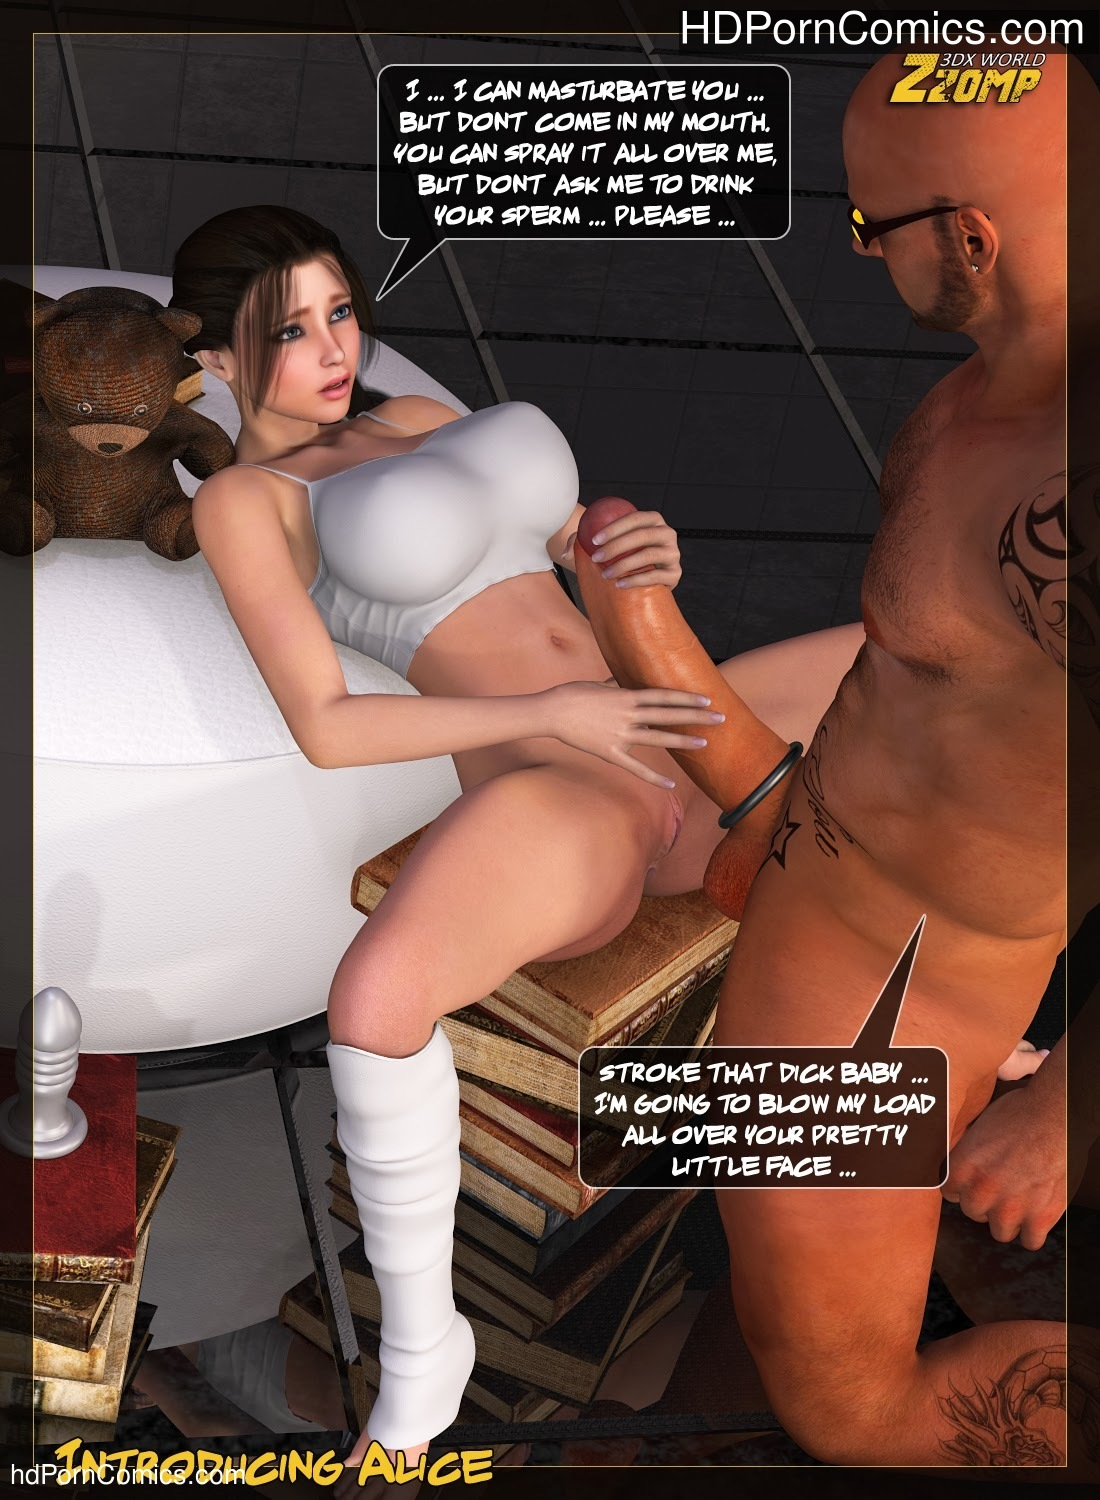 Zzomp – Introducing Alice11 free sex comic